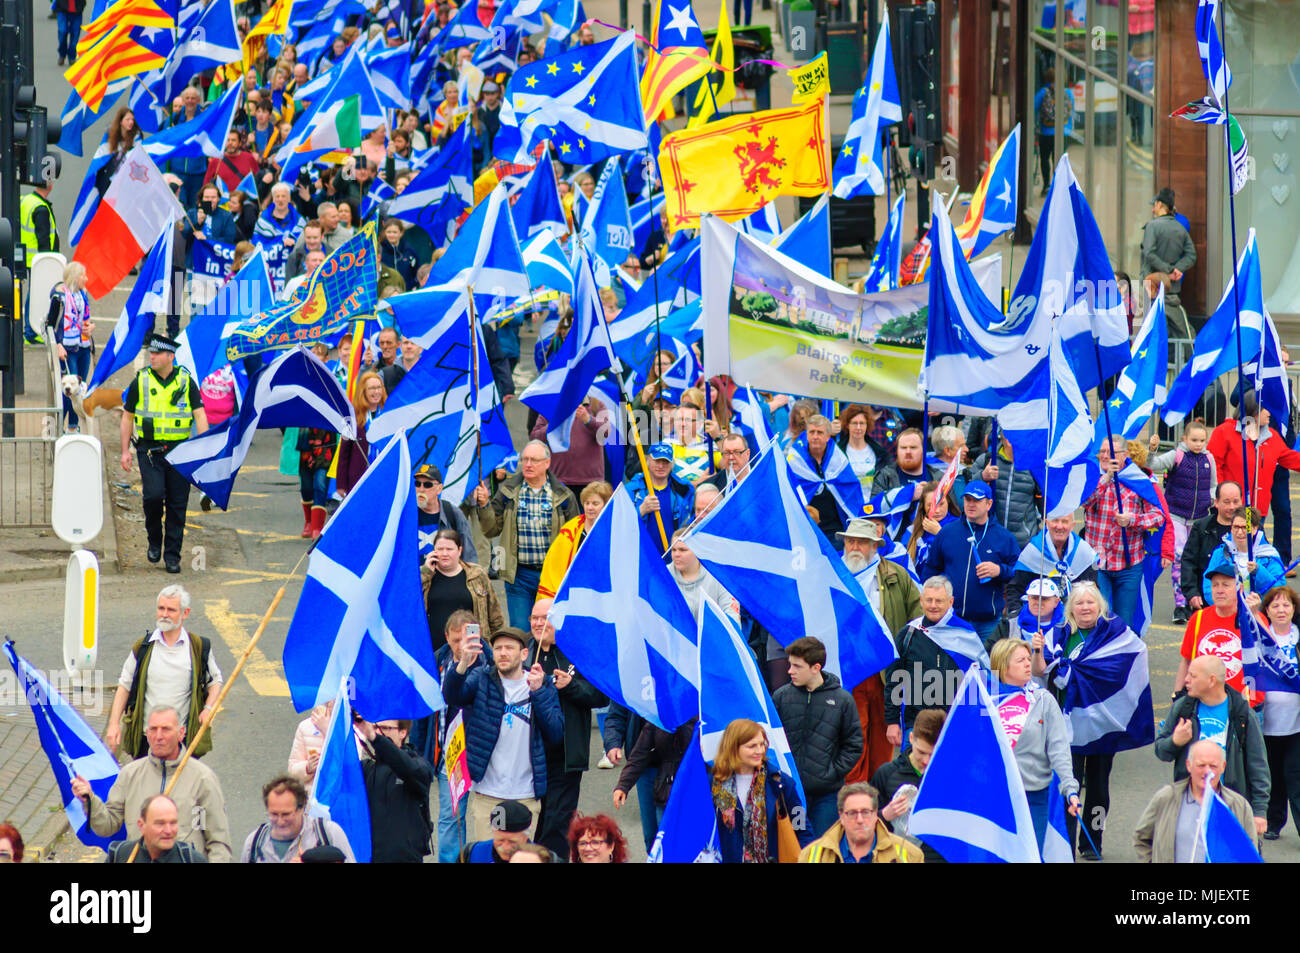 Glasgow, Scotland, UK. 5th may, 2018. Thousands of campaigners in support of Scottish Independence march through the streets of Glasgow. Organised by the group All Under One Banner the march travelled from Kelvingrove Park through the city to Glasgow Green. Credit: Skully/Alamy Live News - Stock Image